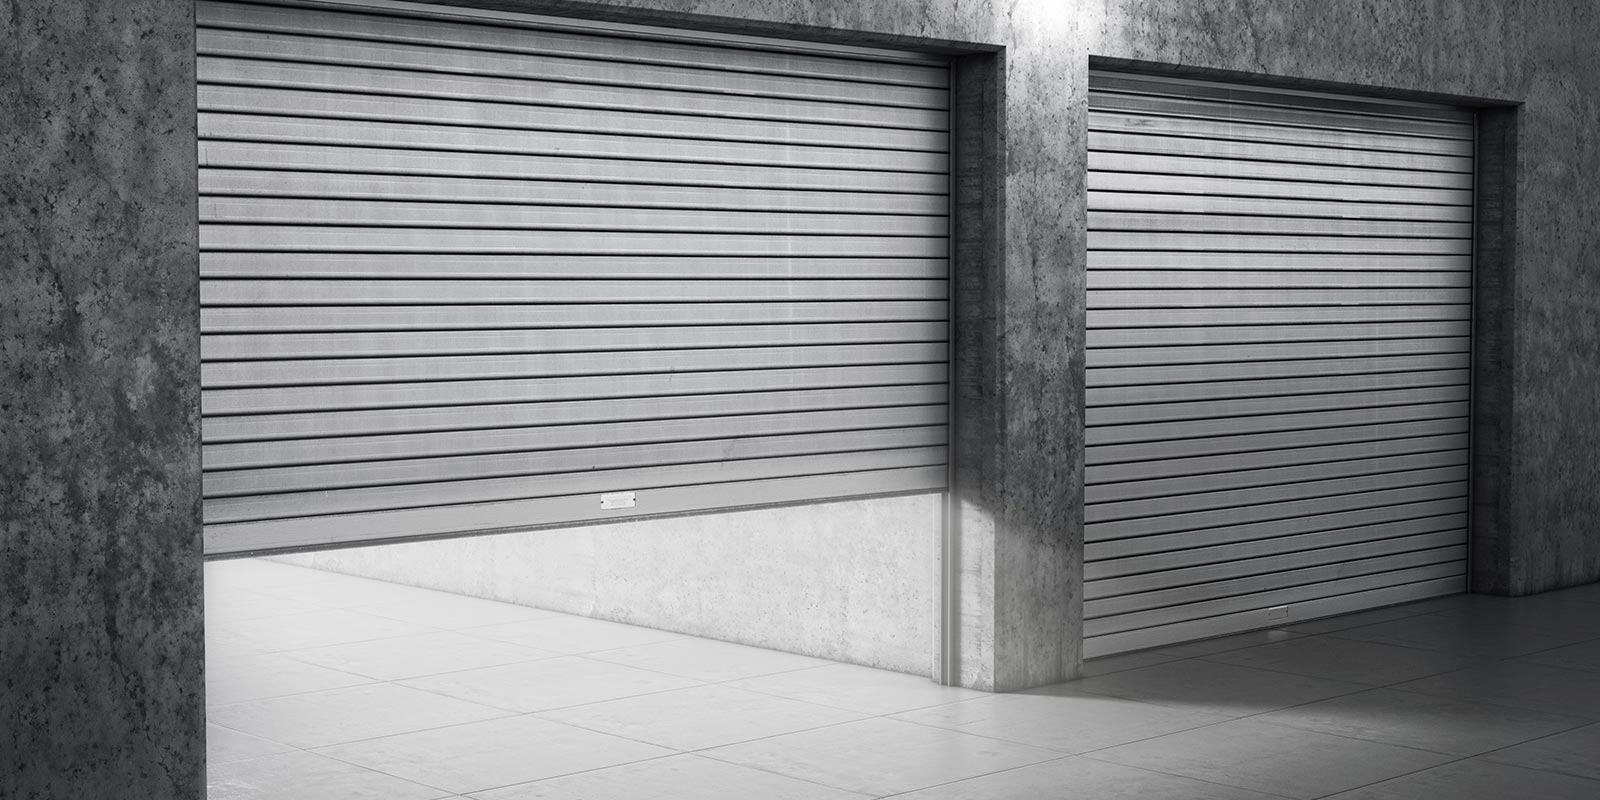 Overhead Door overhead door little rock images : Commercial & Residential Overhead Doors - Component Systems Inc